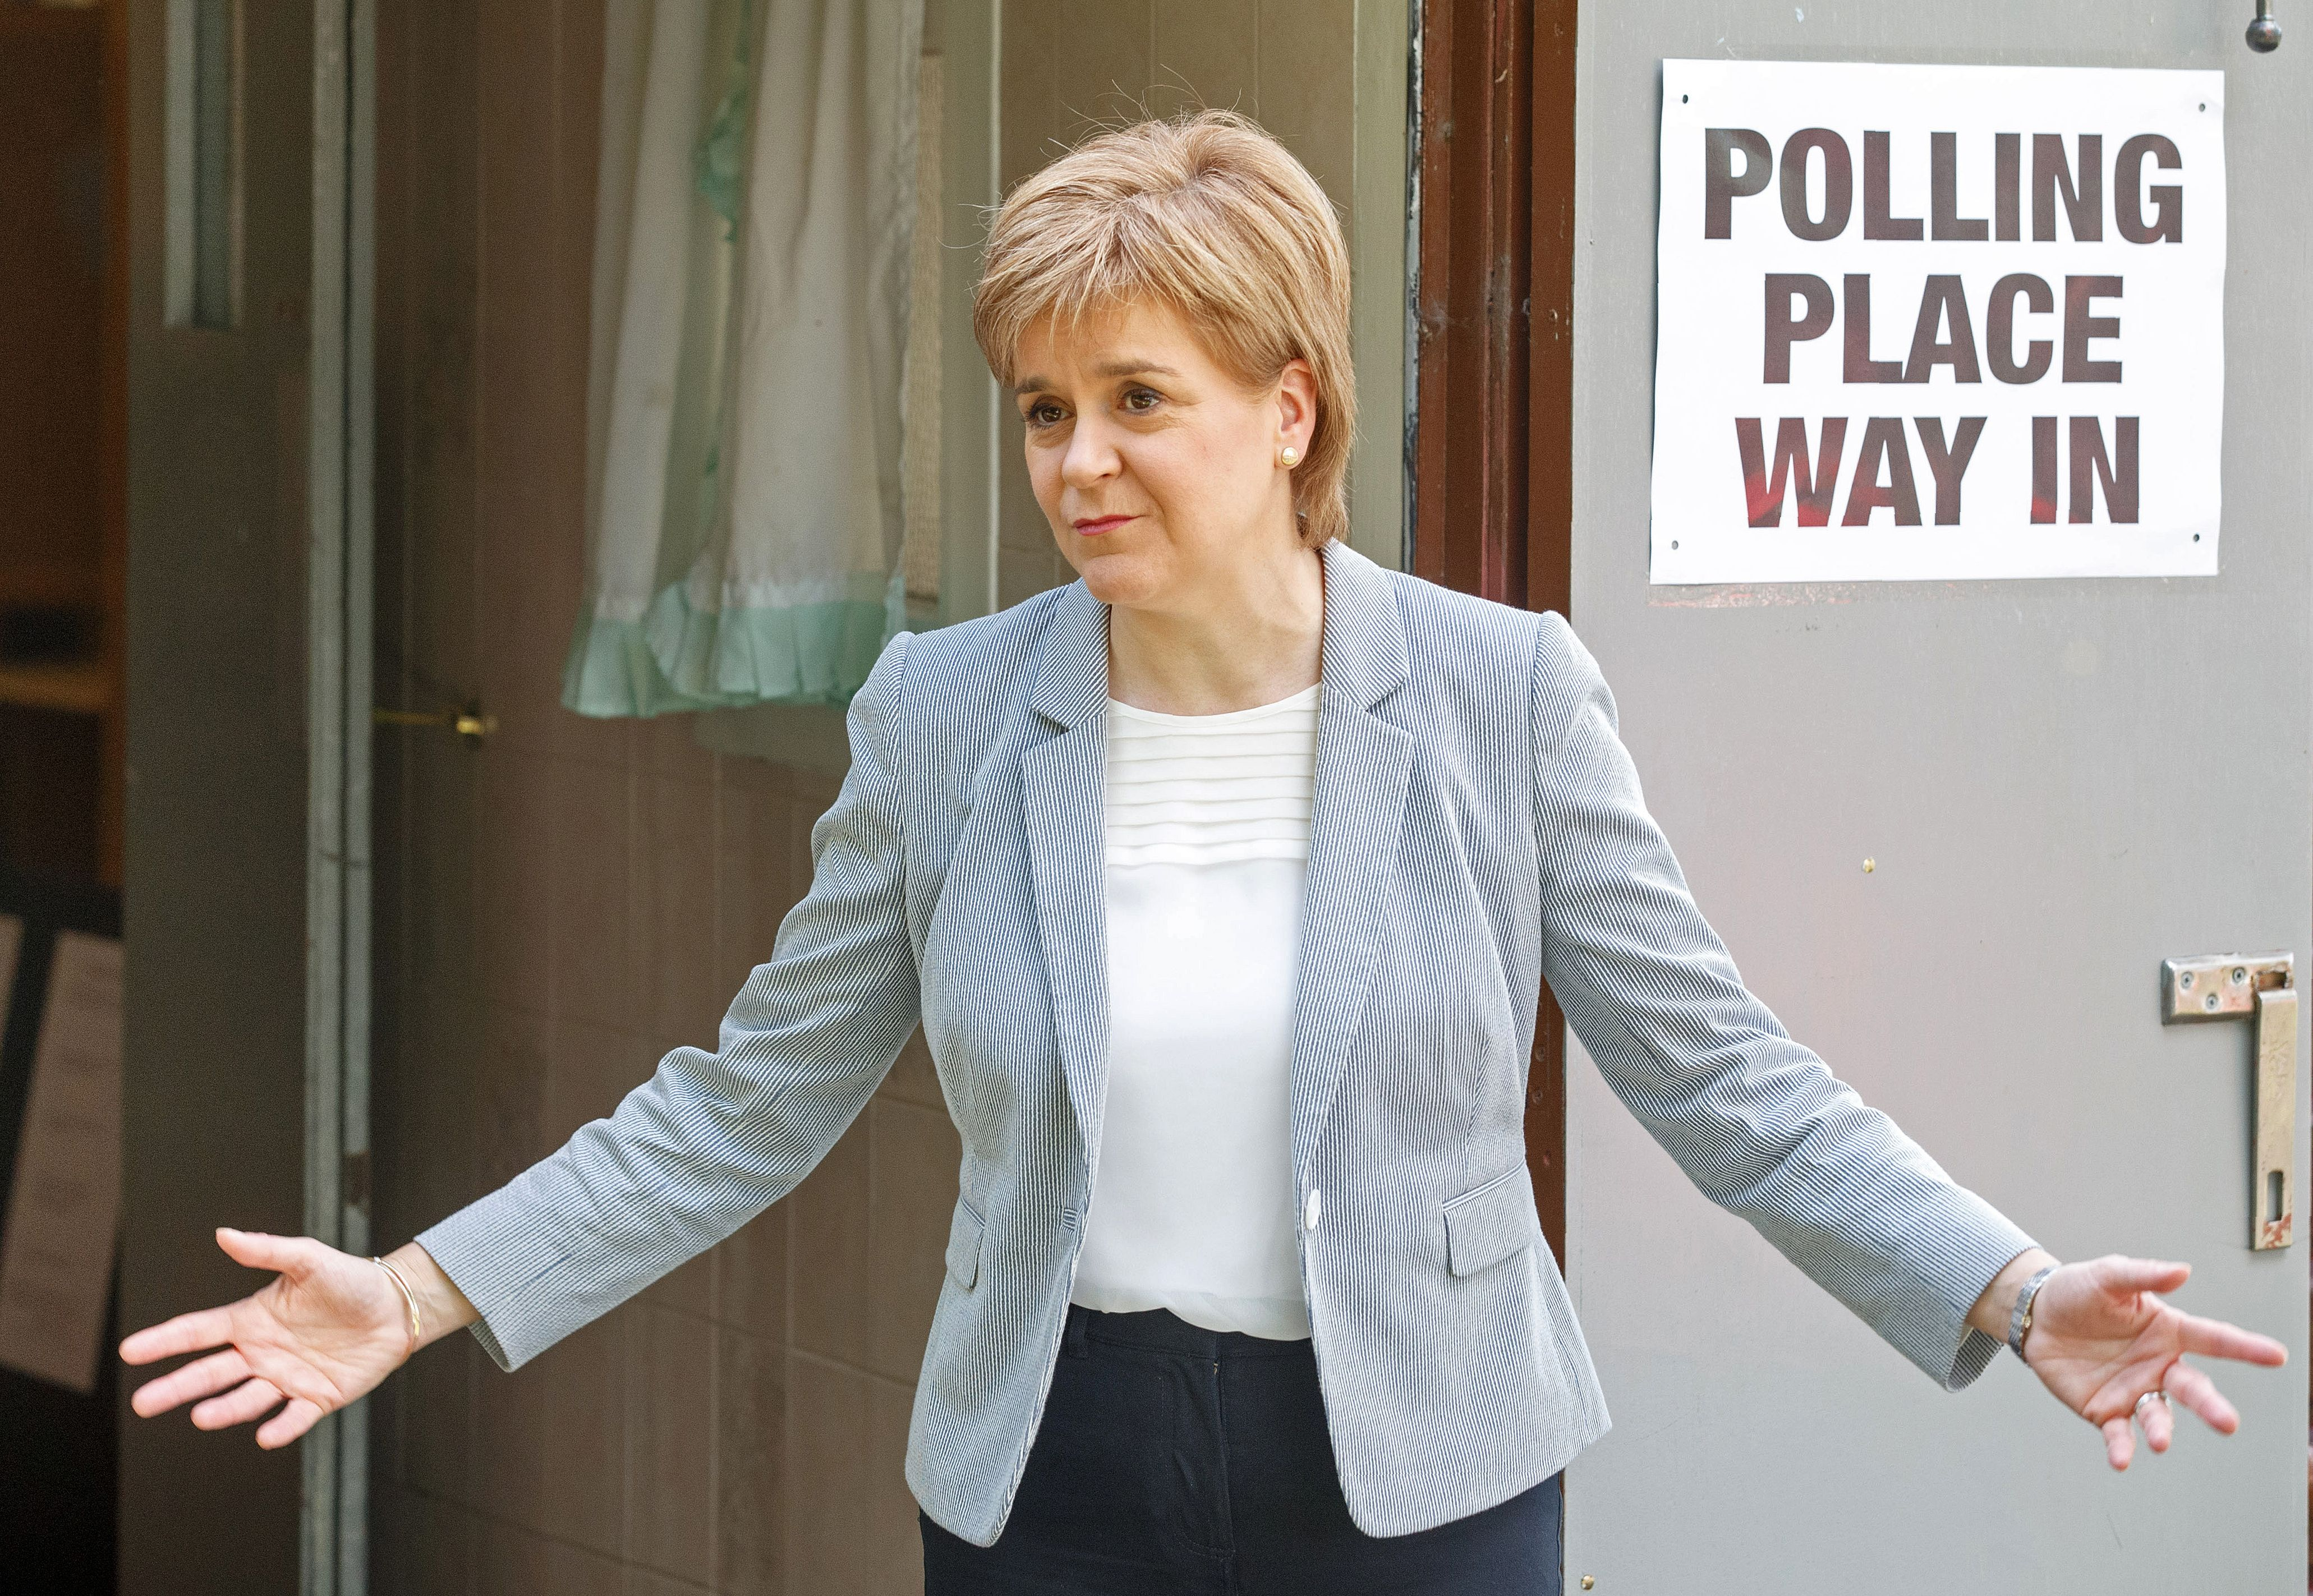 Scotland's First Minister and Leader of the Scottish National Party (SNP), Nicola Sturgeon, reacts as leaves after voting at a polling station at Broomhouse Community Hall in east Glasgow, on June 23, 2016.